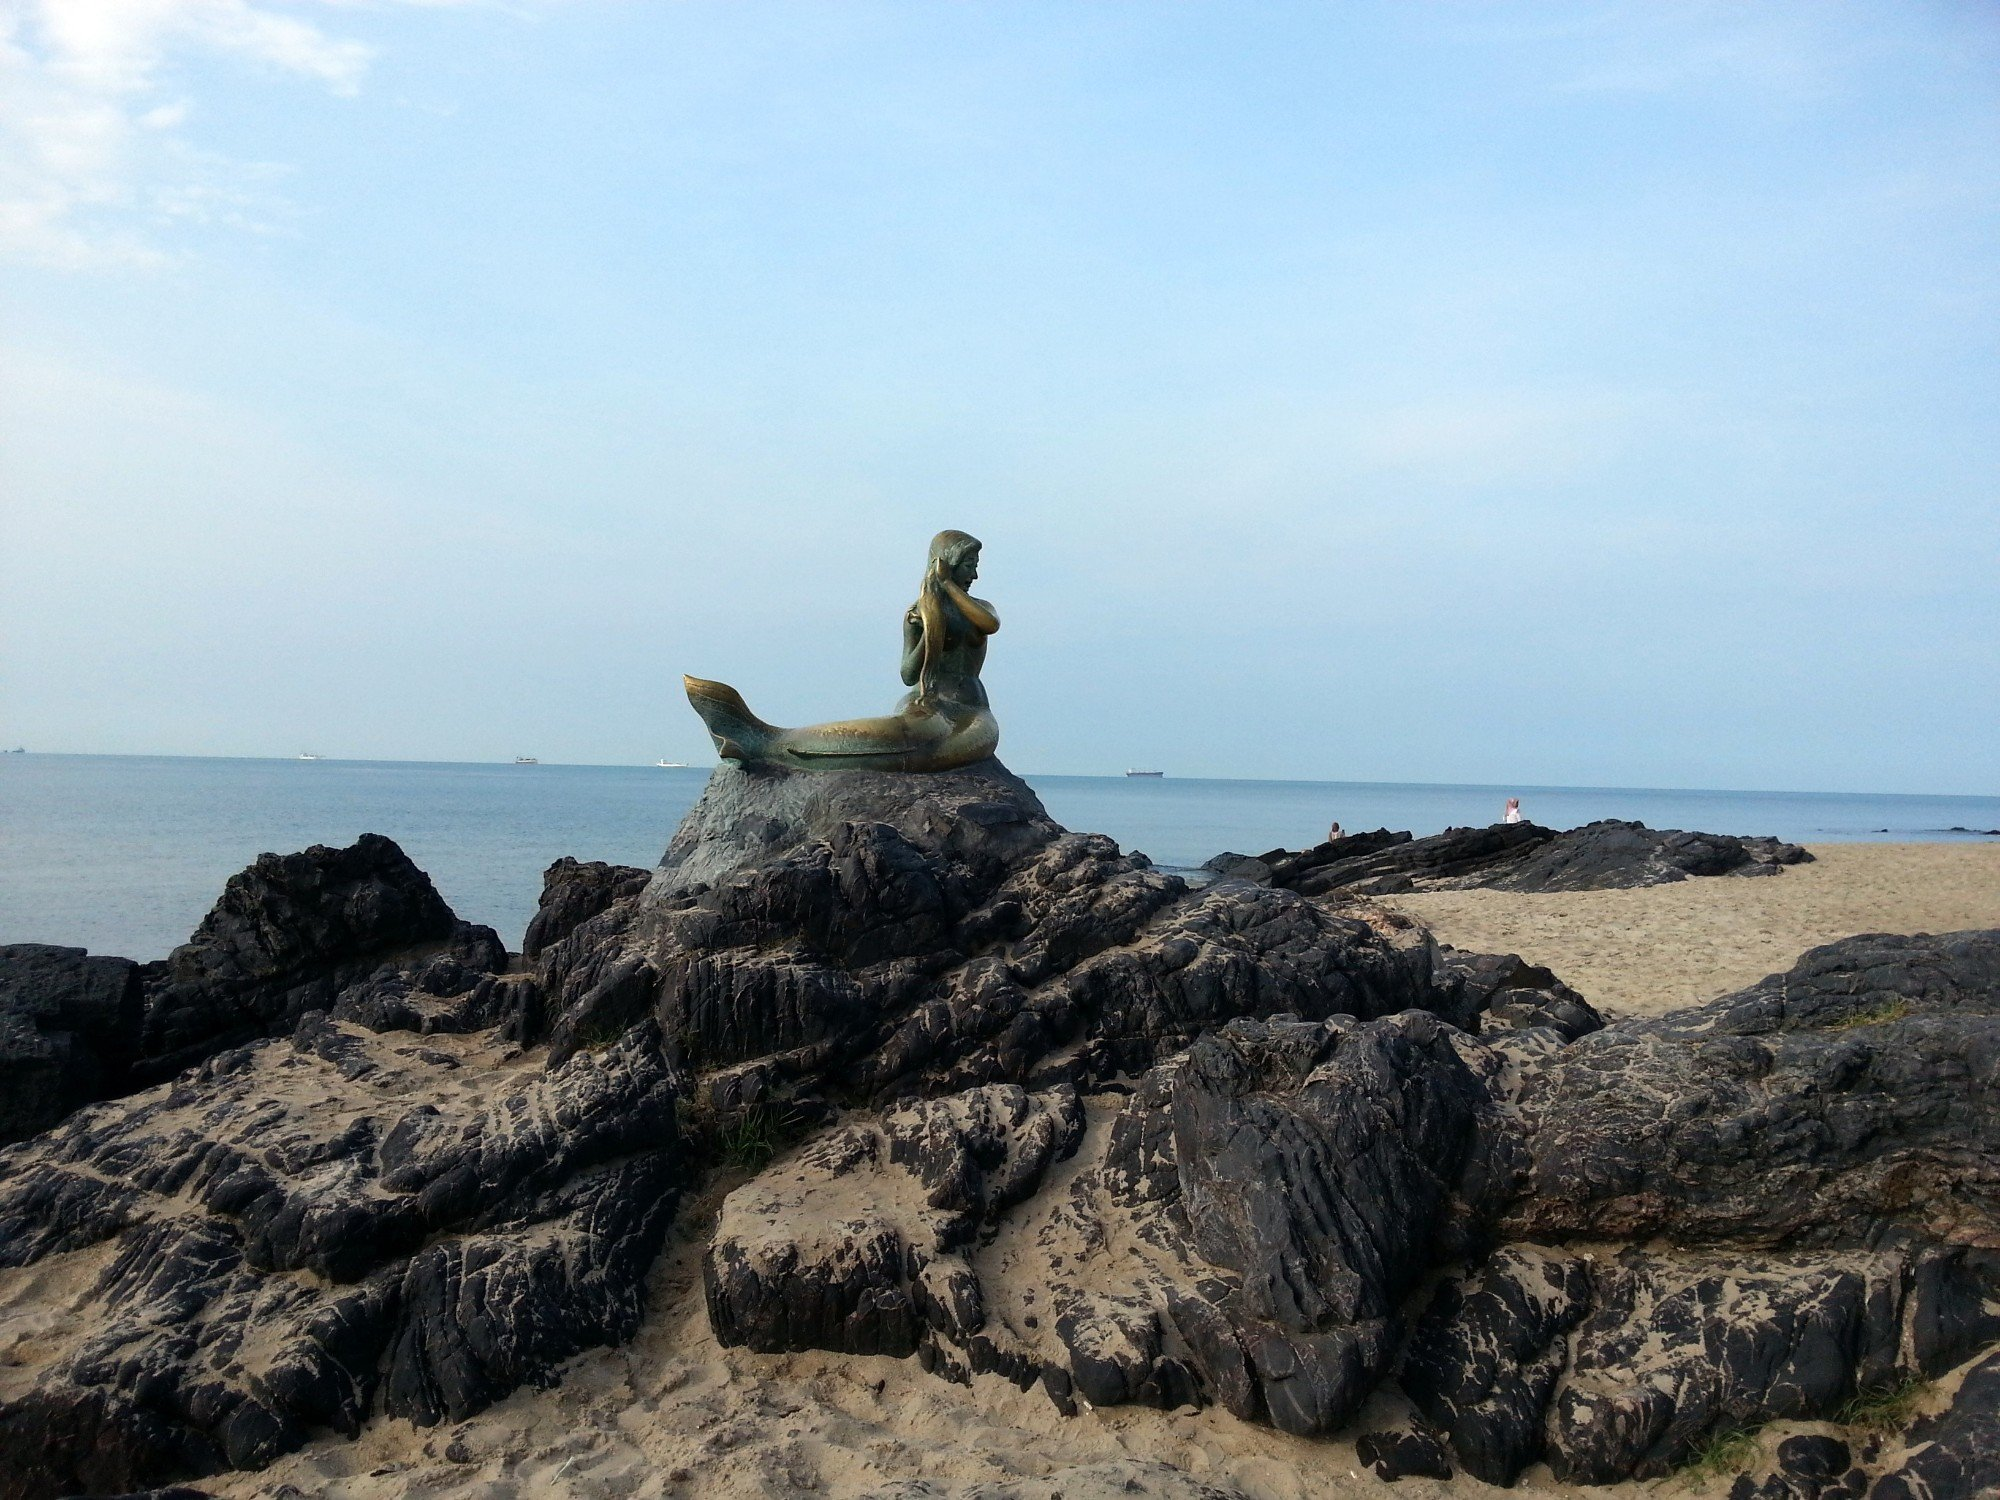 Samila Beach in Songkhla